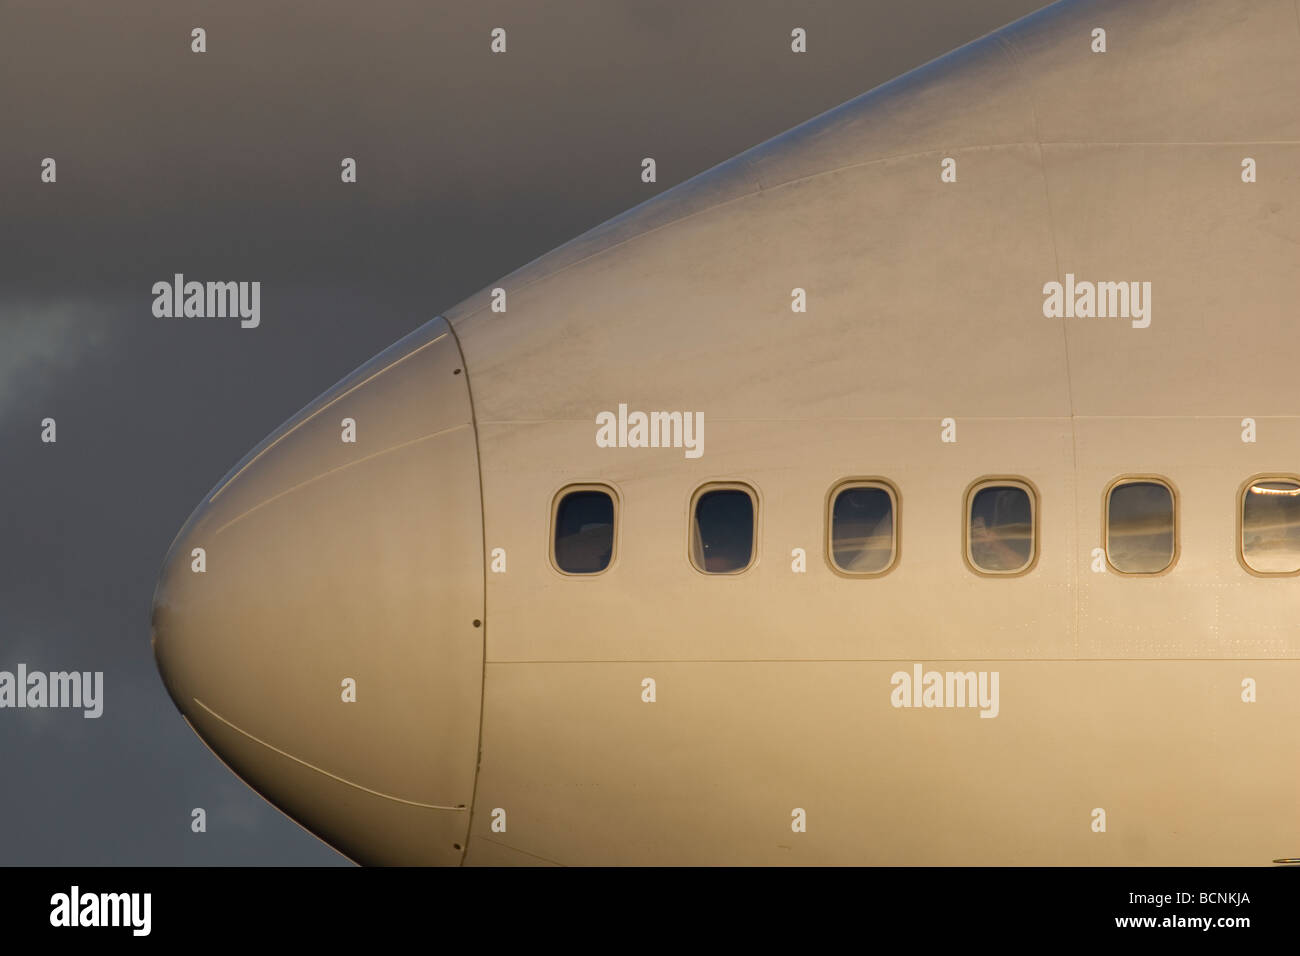 Close up of a Jumbo Boeing 747 nose - Stock Image